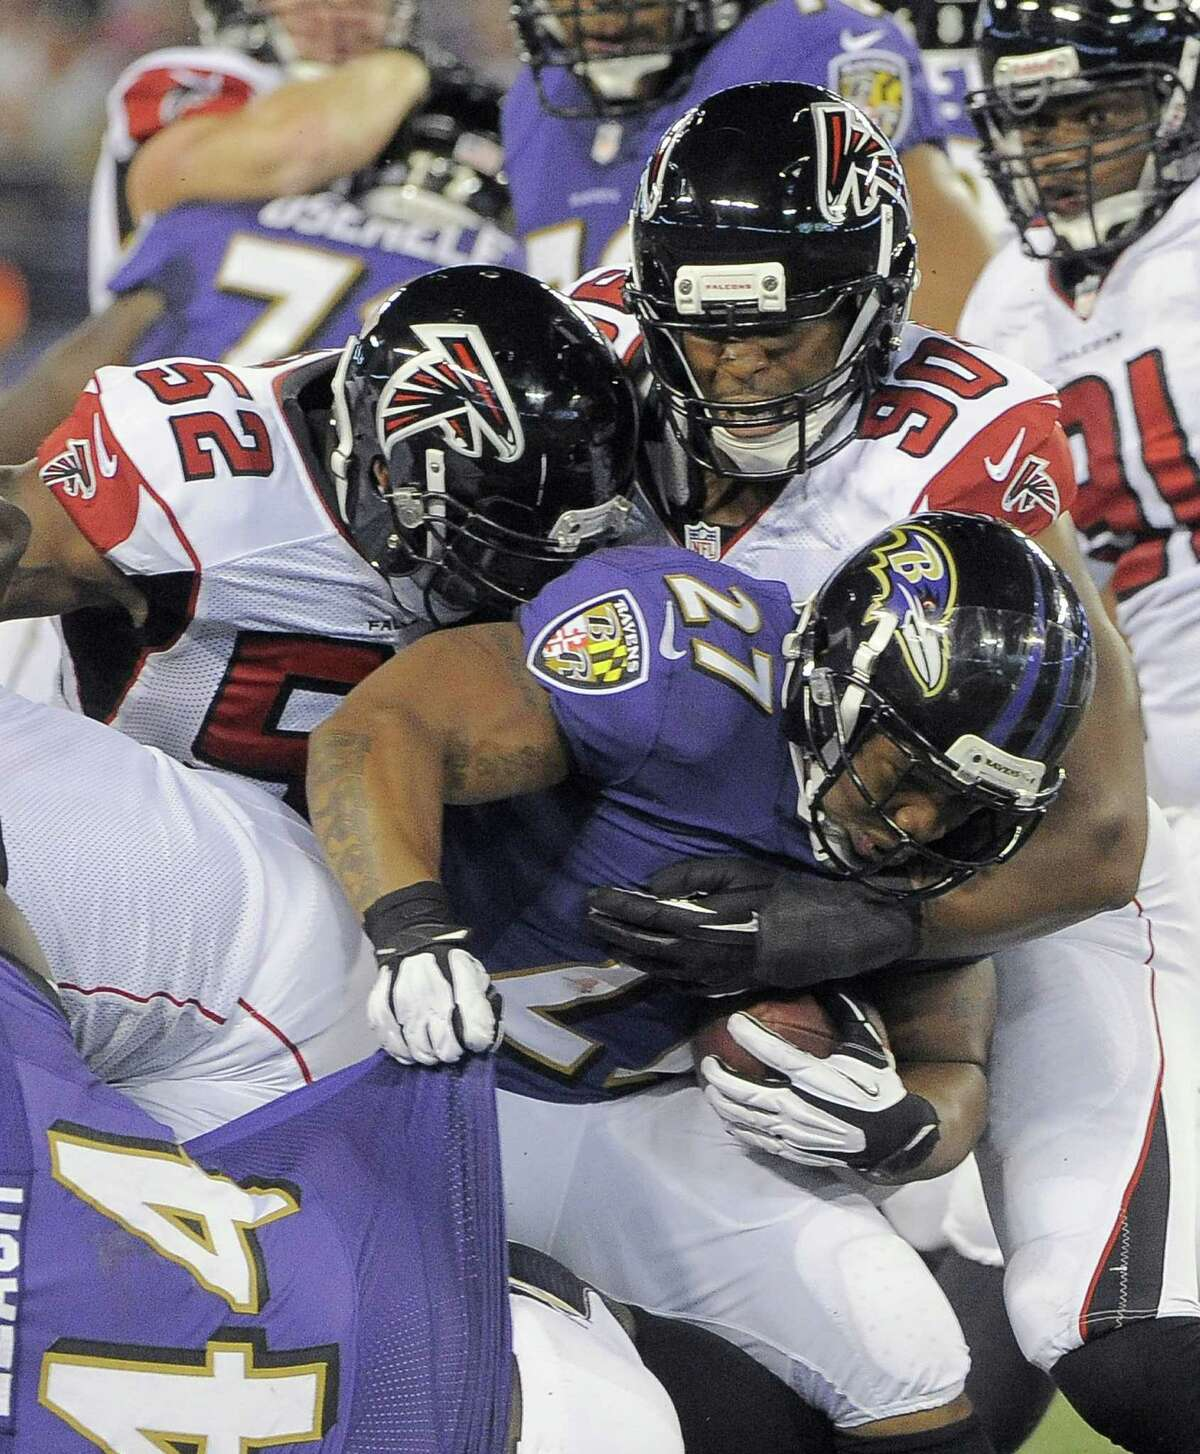 Falcons middle linebacker Akeem Dent (52) and defensive end Osi Umenyiora stop Ravens running back Ray Rice for a loss in the second quarter. Baltimore rallied for a 27-23 win.